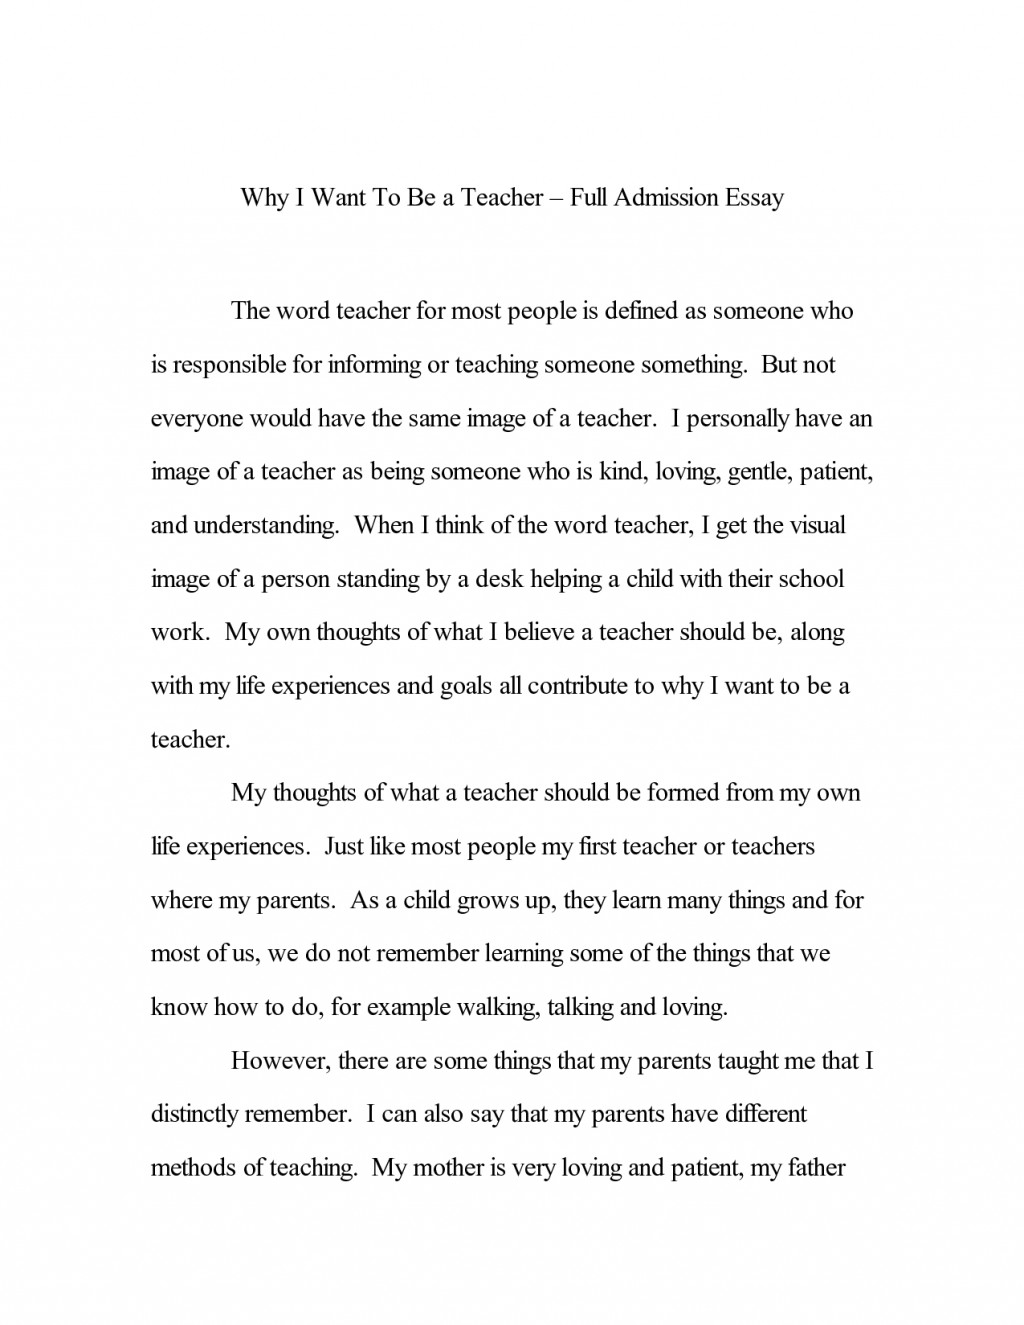 005 College Application Essay Example Writings And Essays What Is Personal For Ideal Vistalist Co I You The Format Topic Prompt Excellent Help Examples Pdf 500 Words 250 Large